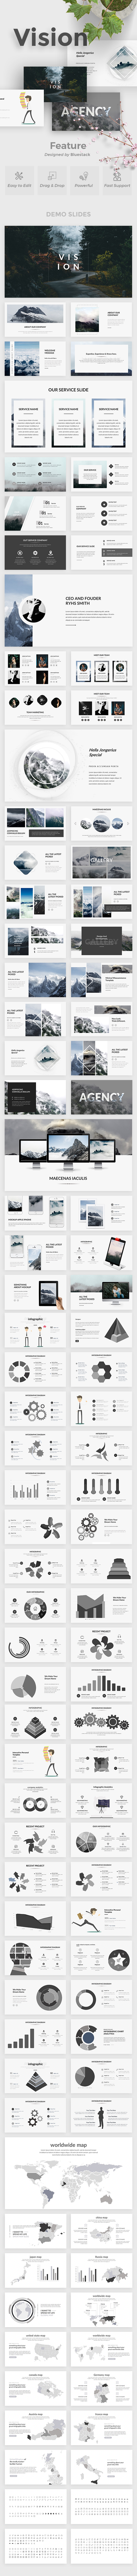 Vision Creative Powerpoint Template - Creative PowerPoint Templates